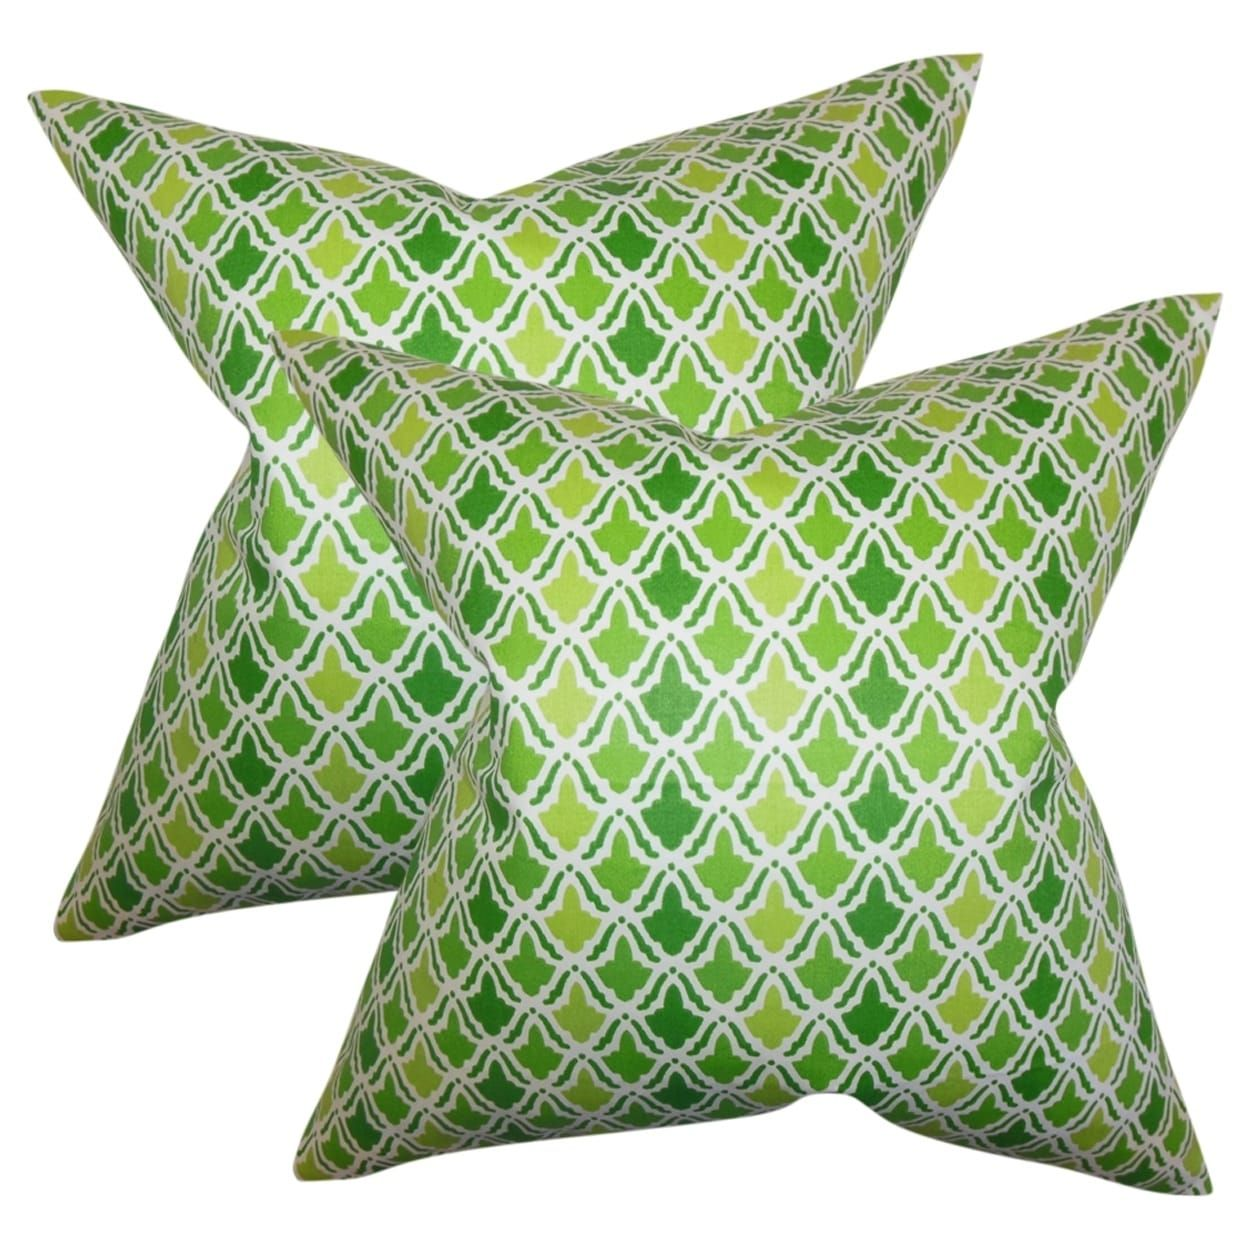 Set of oan geometric throw pillows in green size x